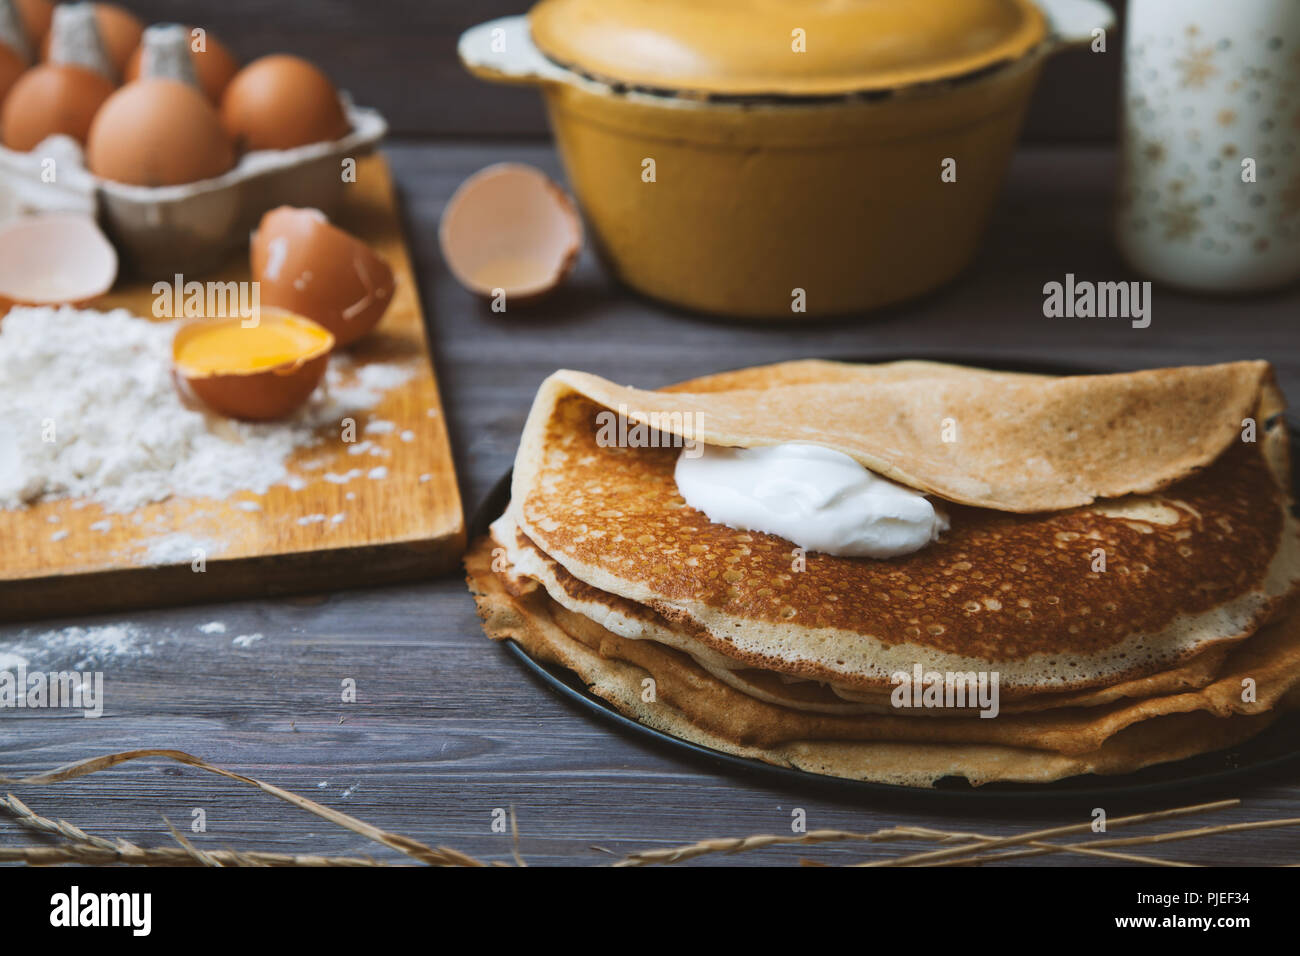 fresh, hot pancakes in a frying pan, eggs, milk, flour on a wooden table. Top view - Stock Image